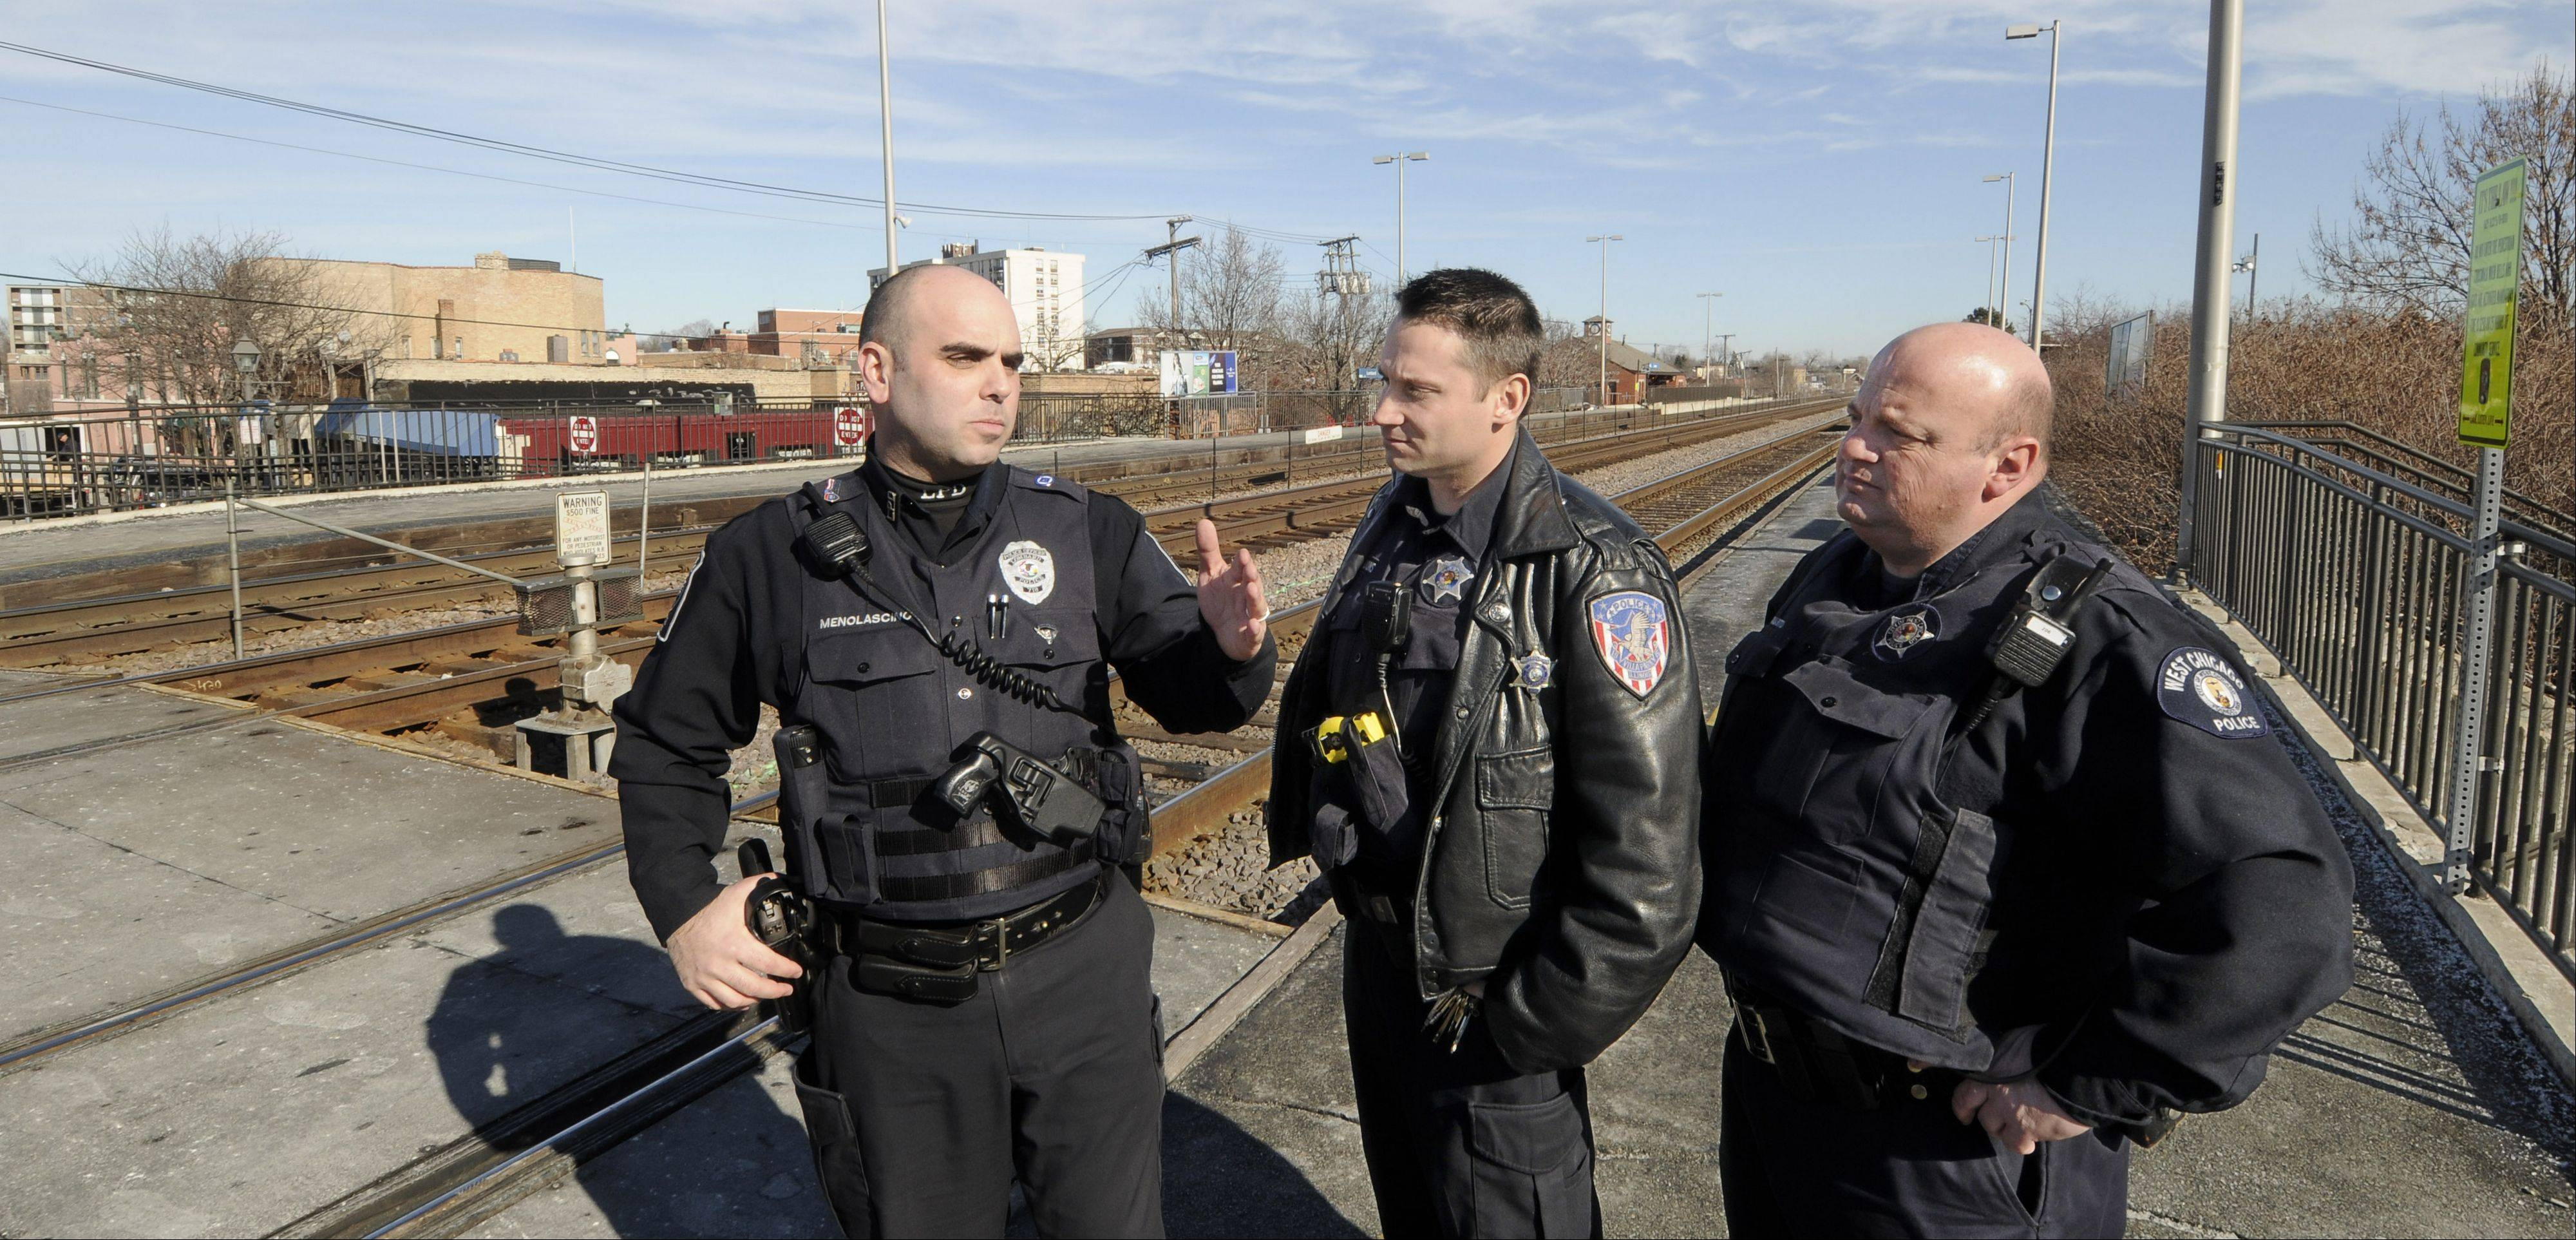 Police officers Joe Menolascino of Lombard, William Lyons of Villa Park and Anthony Quarto of West Chicago are leaders in railroad safety among departments recognized for working to keep the public safe near train tracks.